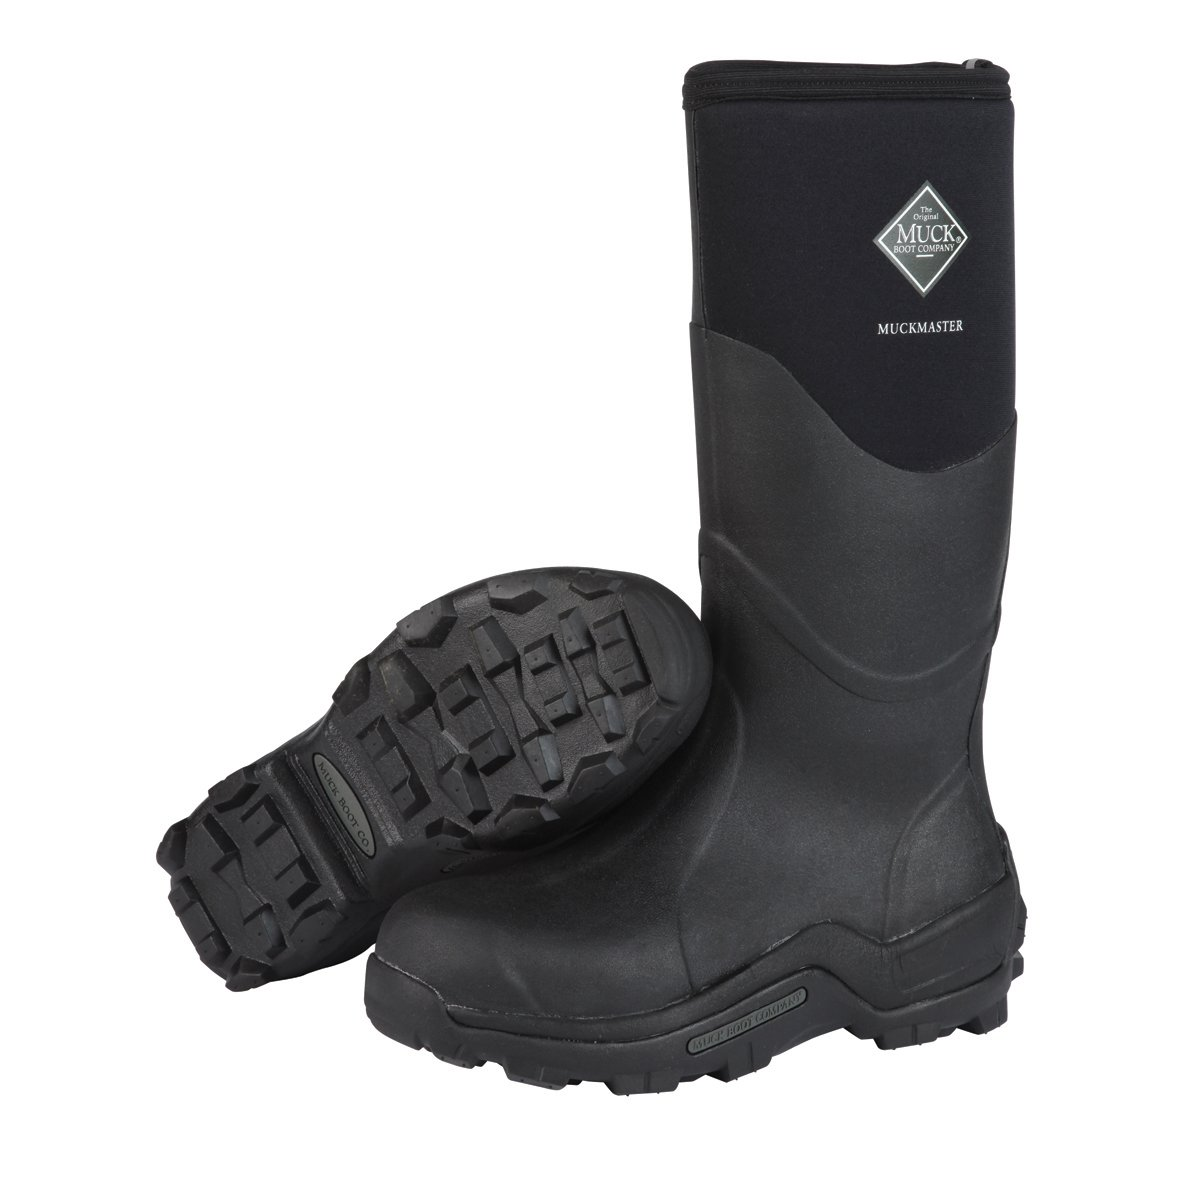 The Original MuckBoots Adult Muckmaster Hi-Cut Boot,Black,15 M US Mens/16 M US Womens